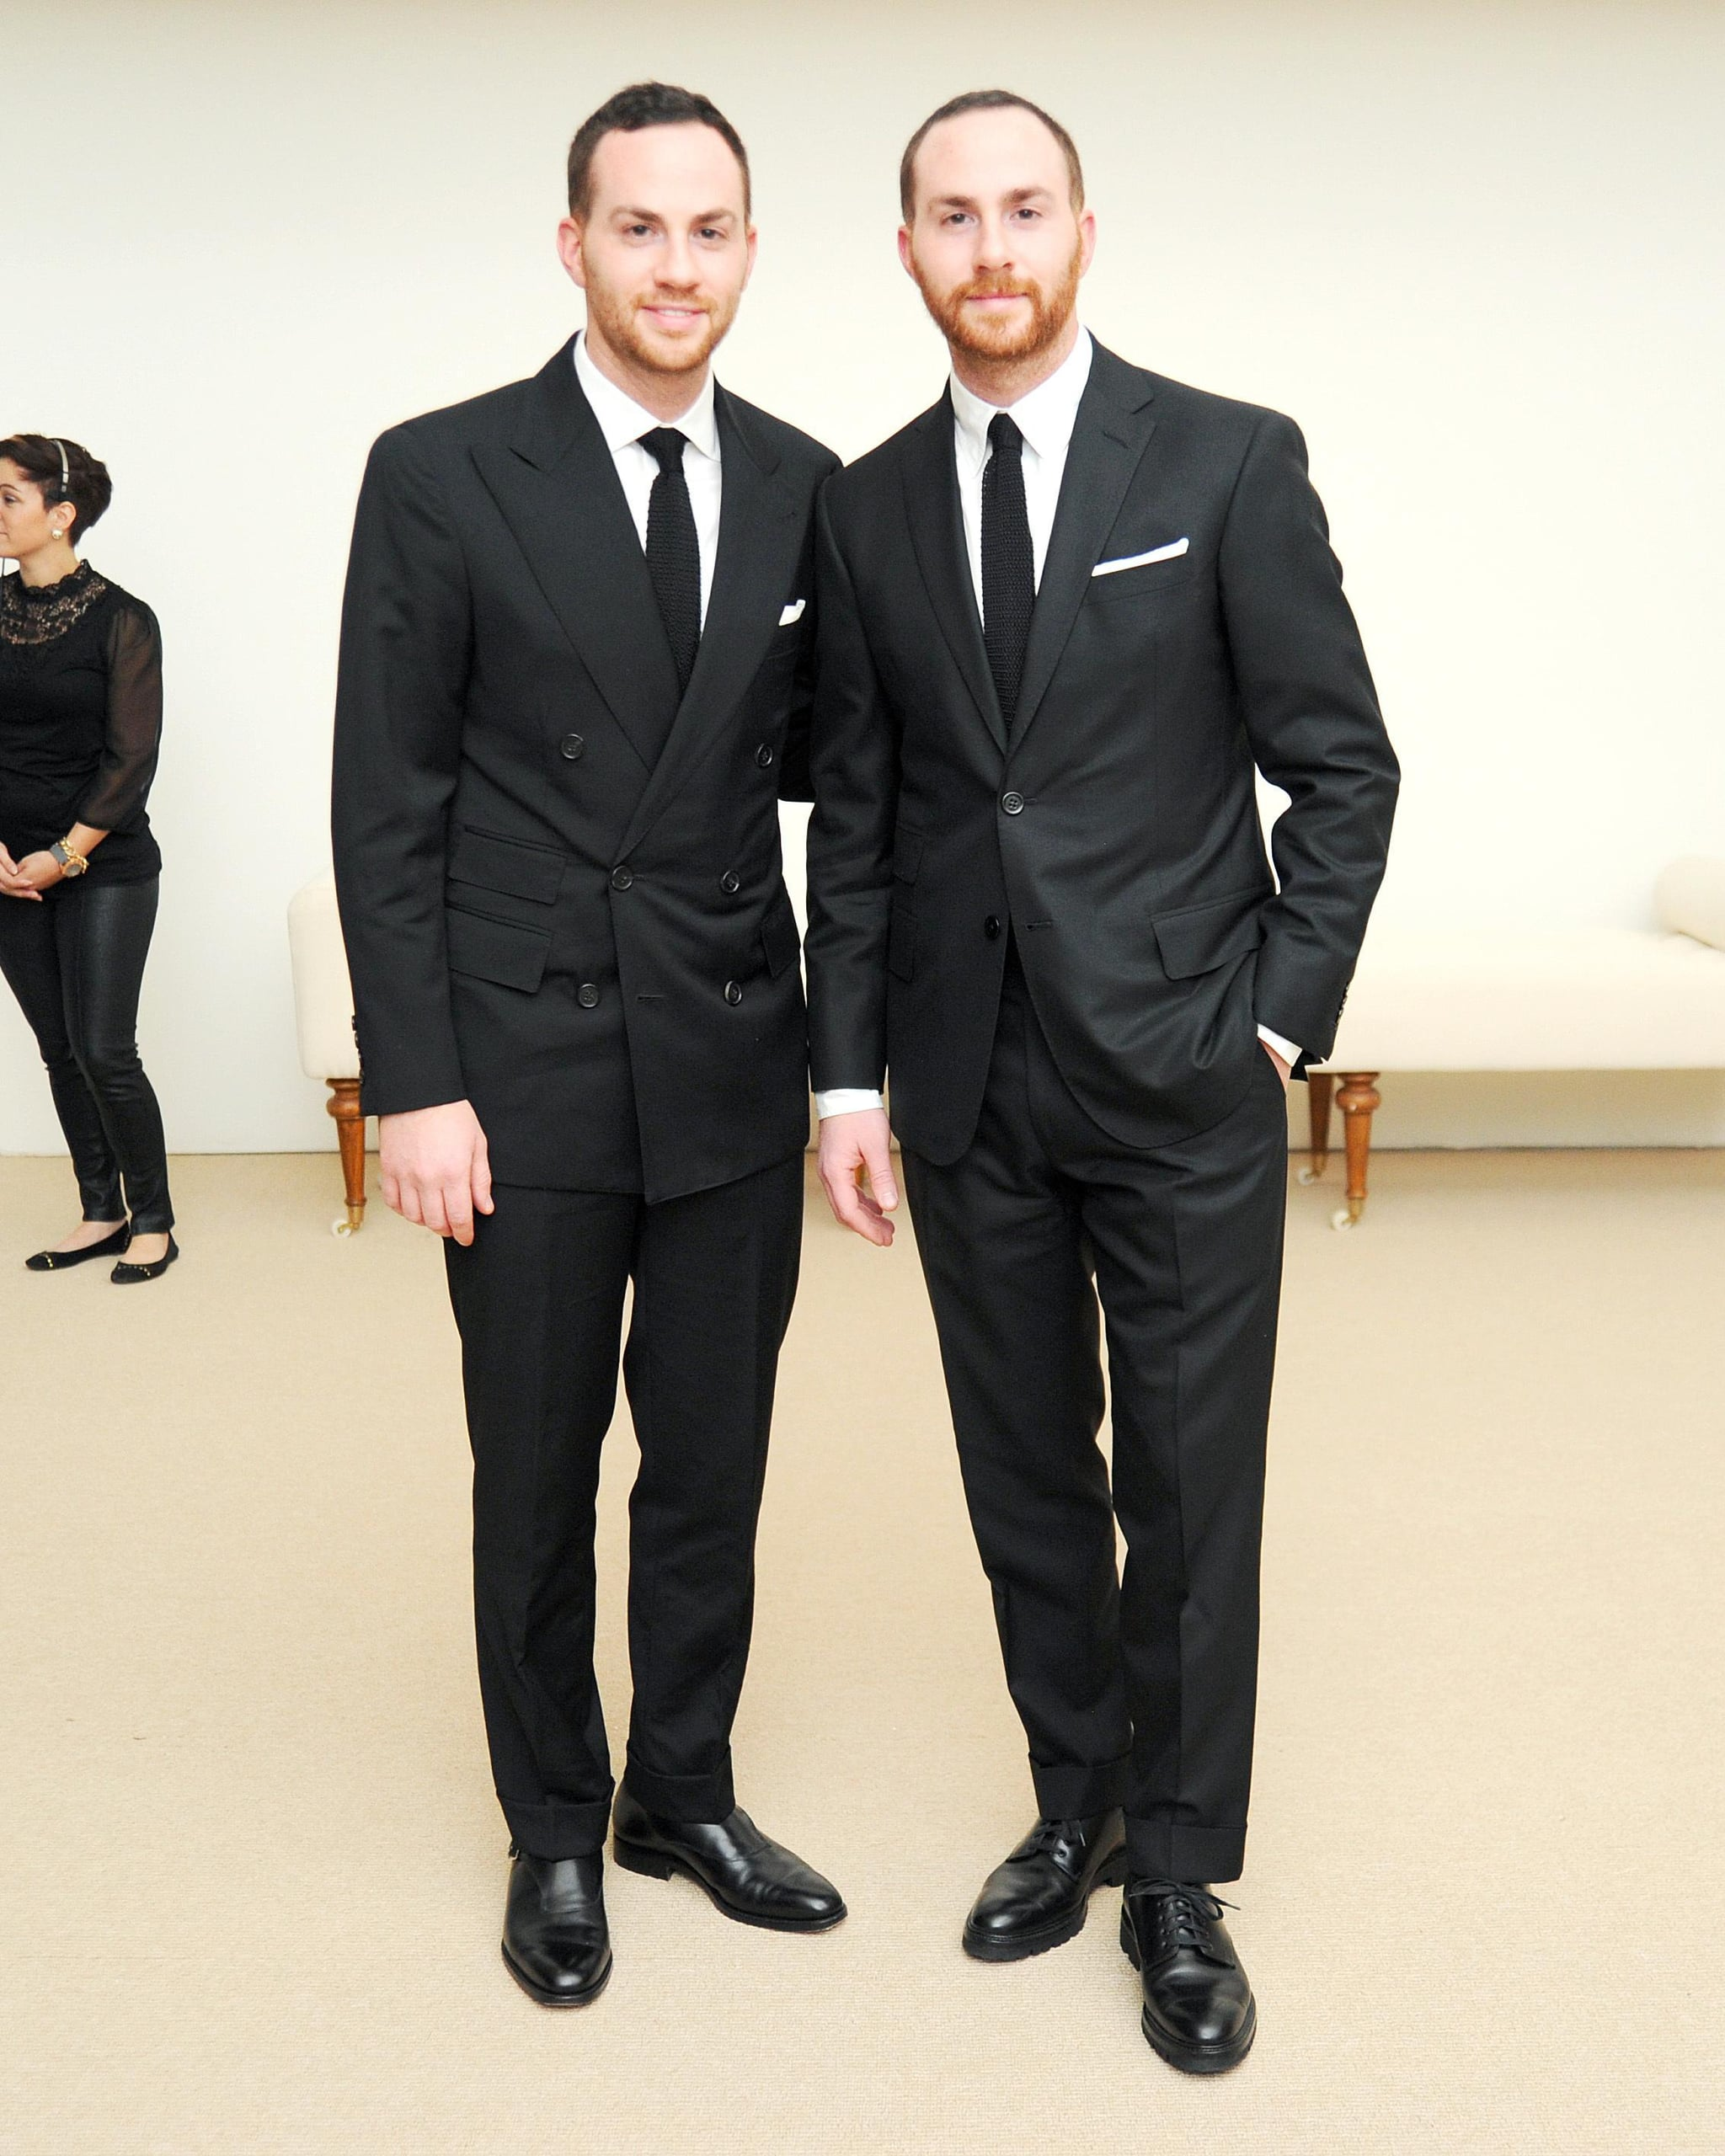 Ariel and Shimon Ovadia of Ovadia and Sons